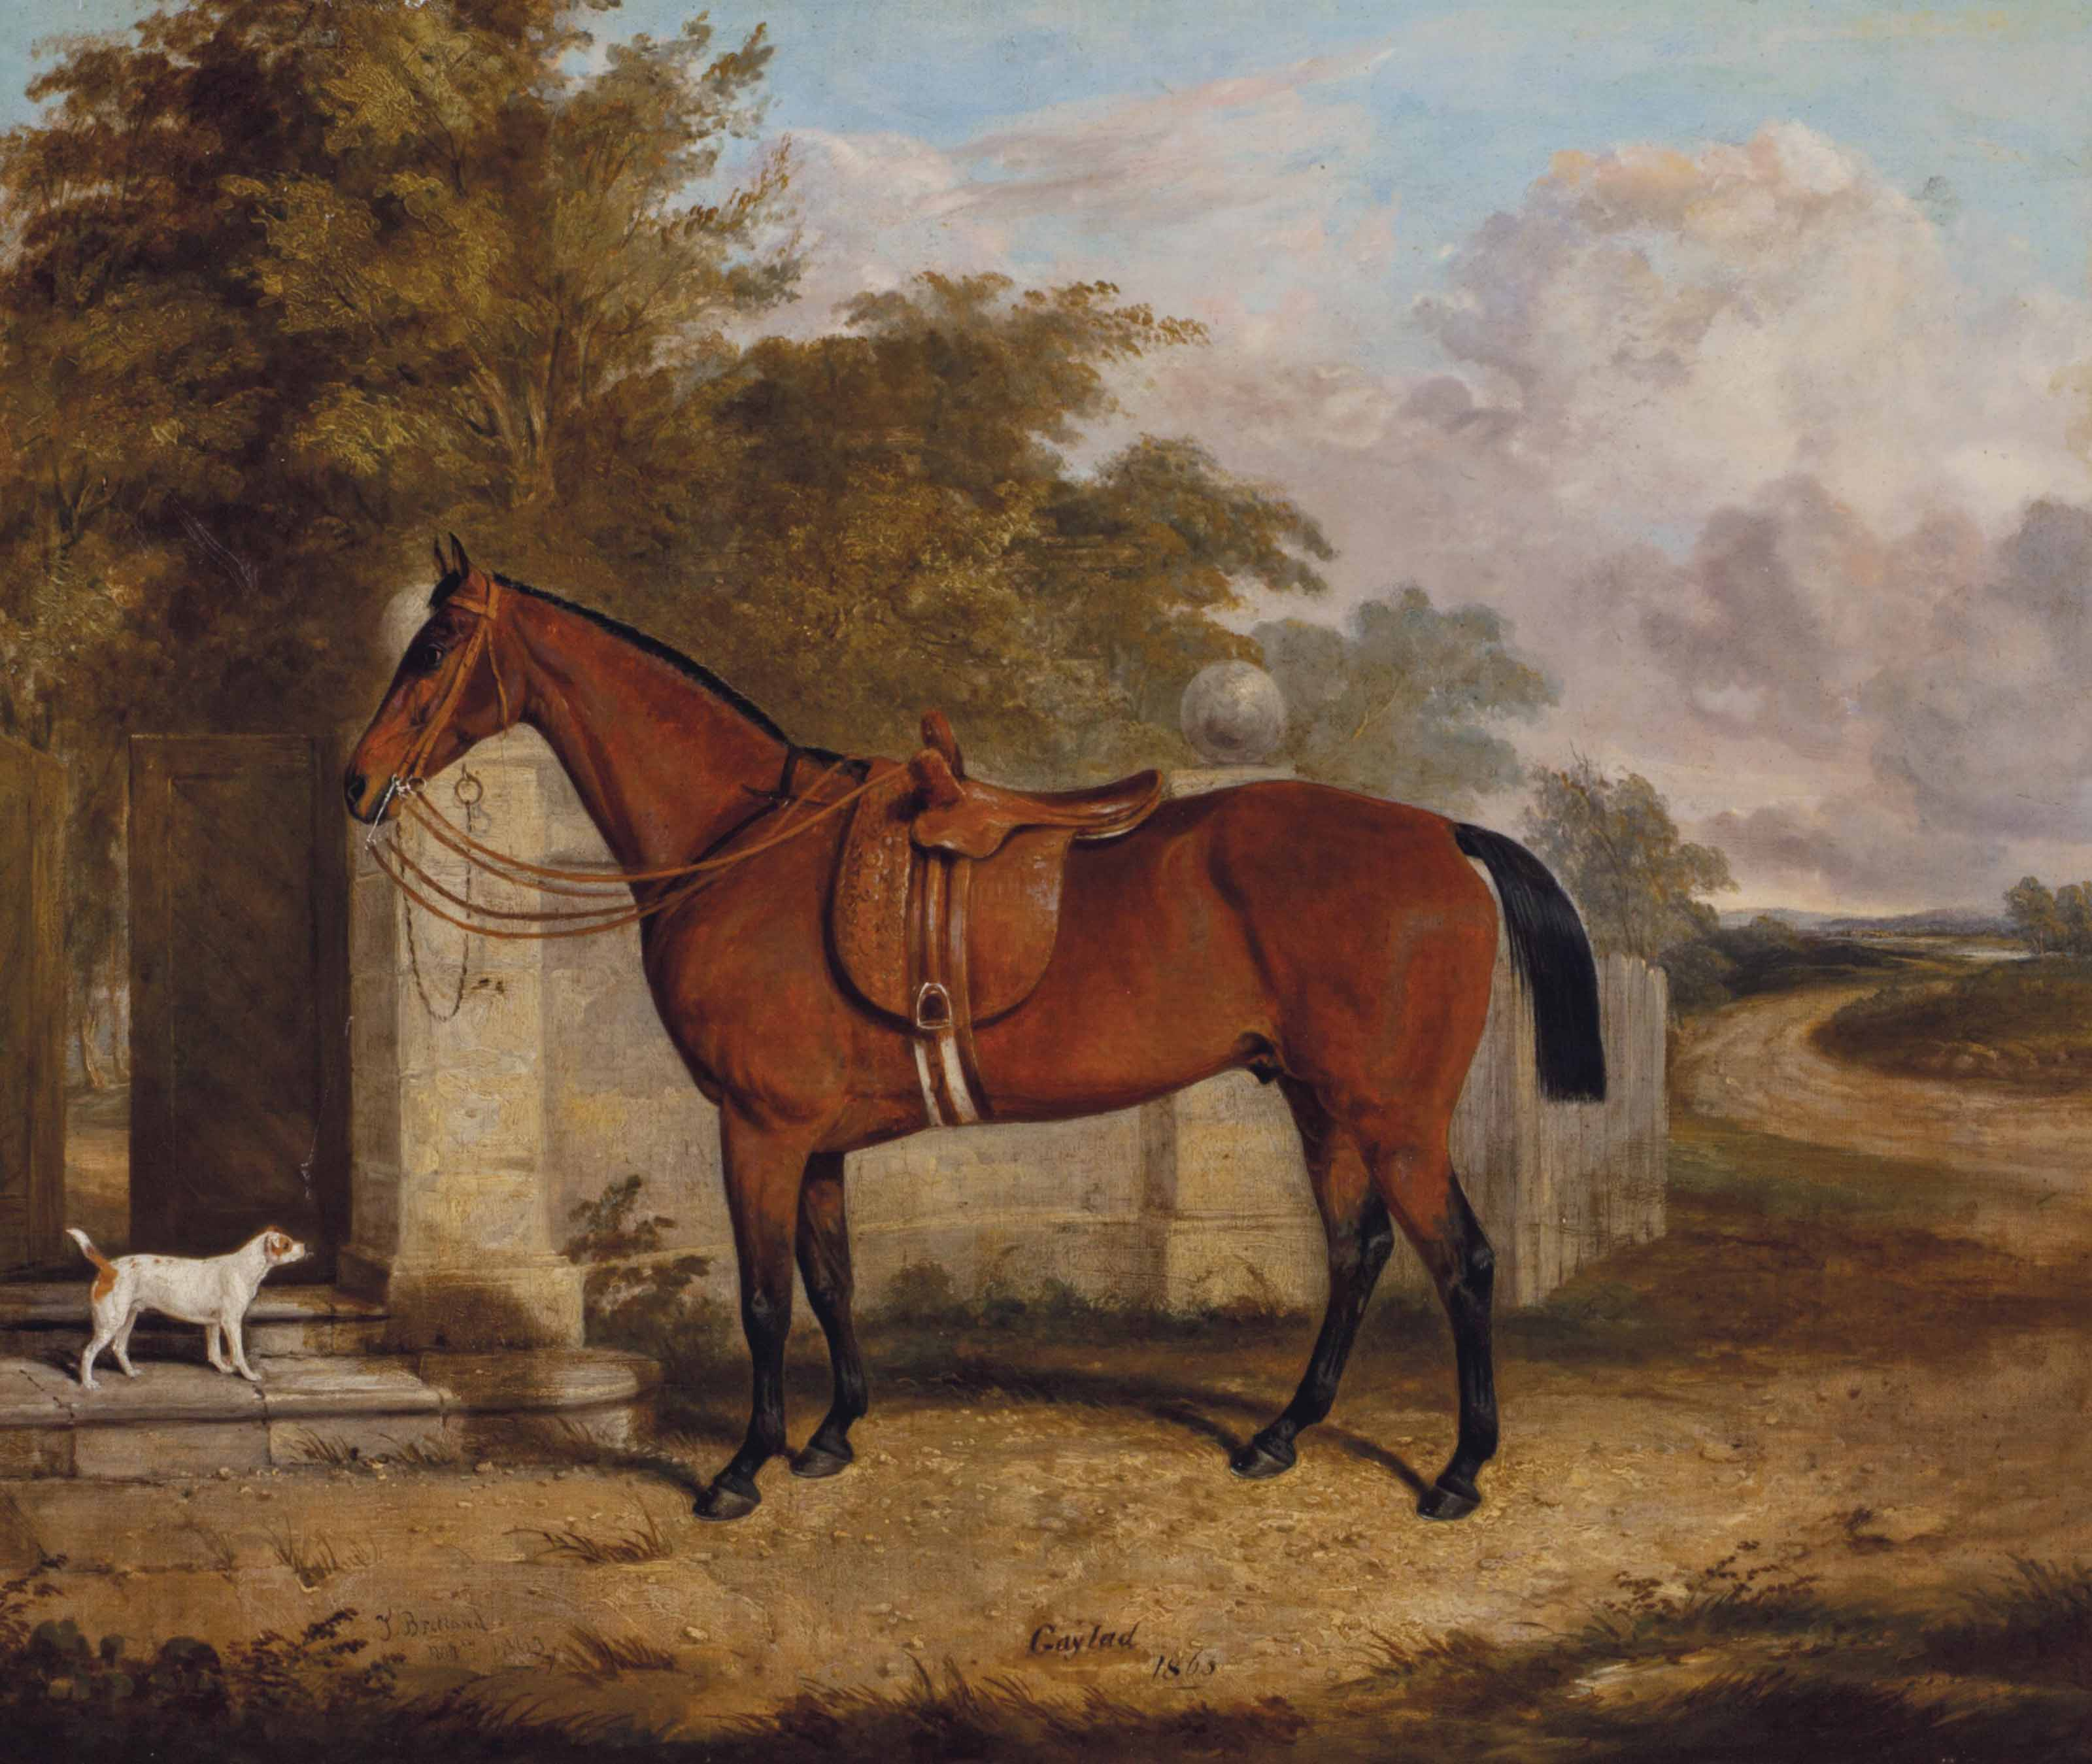 The horse Gaylad with a dog in a landscape